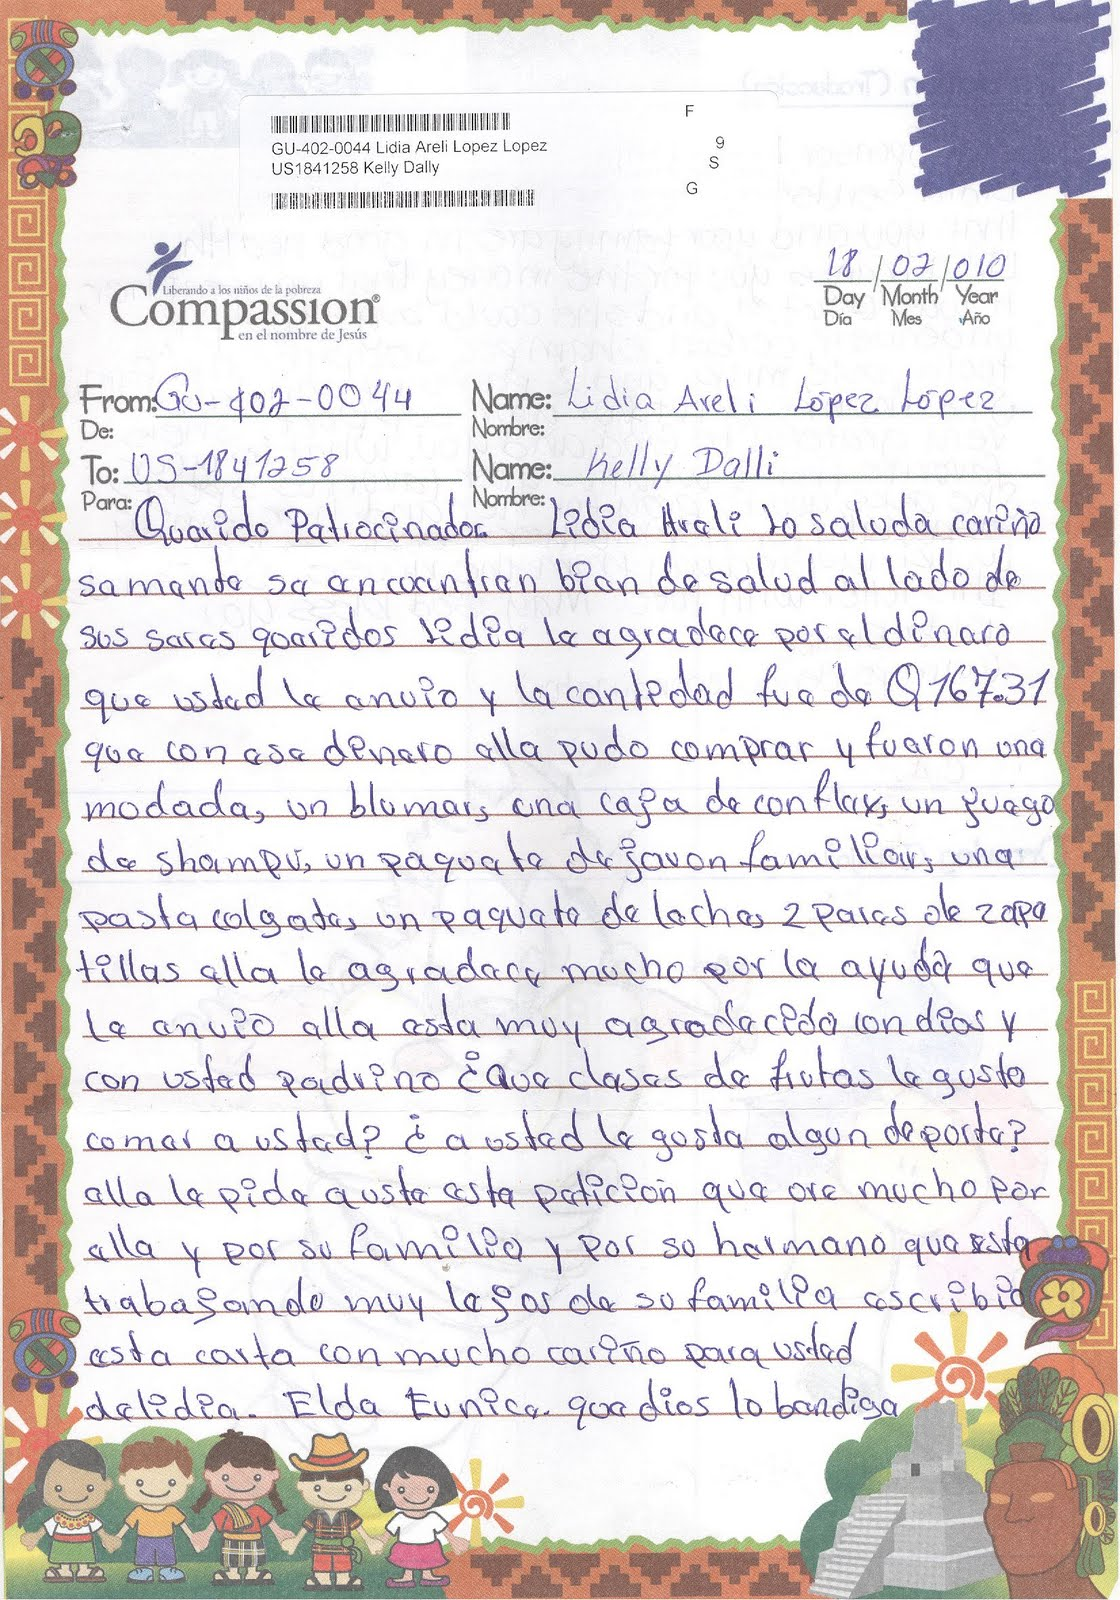 letter of compassion sle - 28 images - advocacy letter template ...